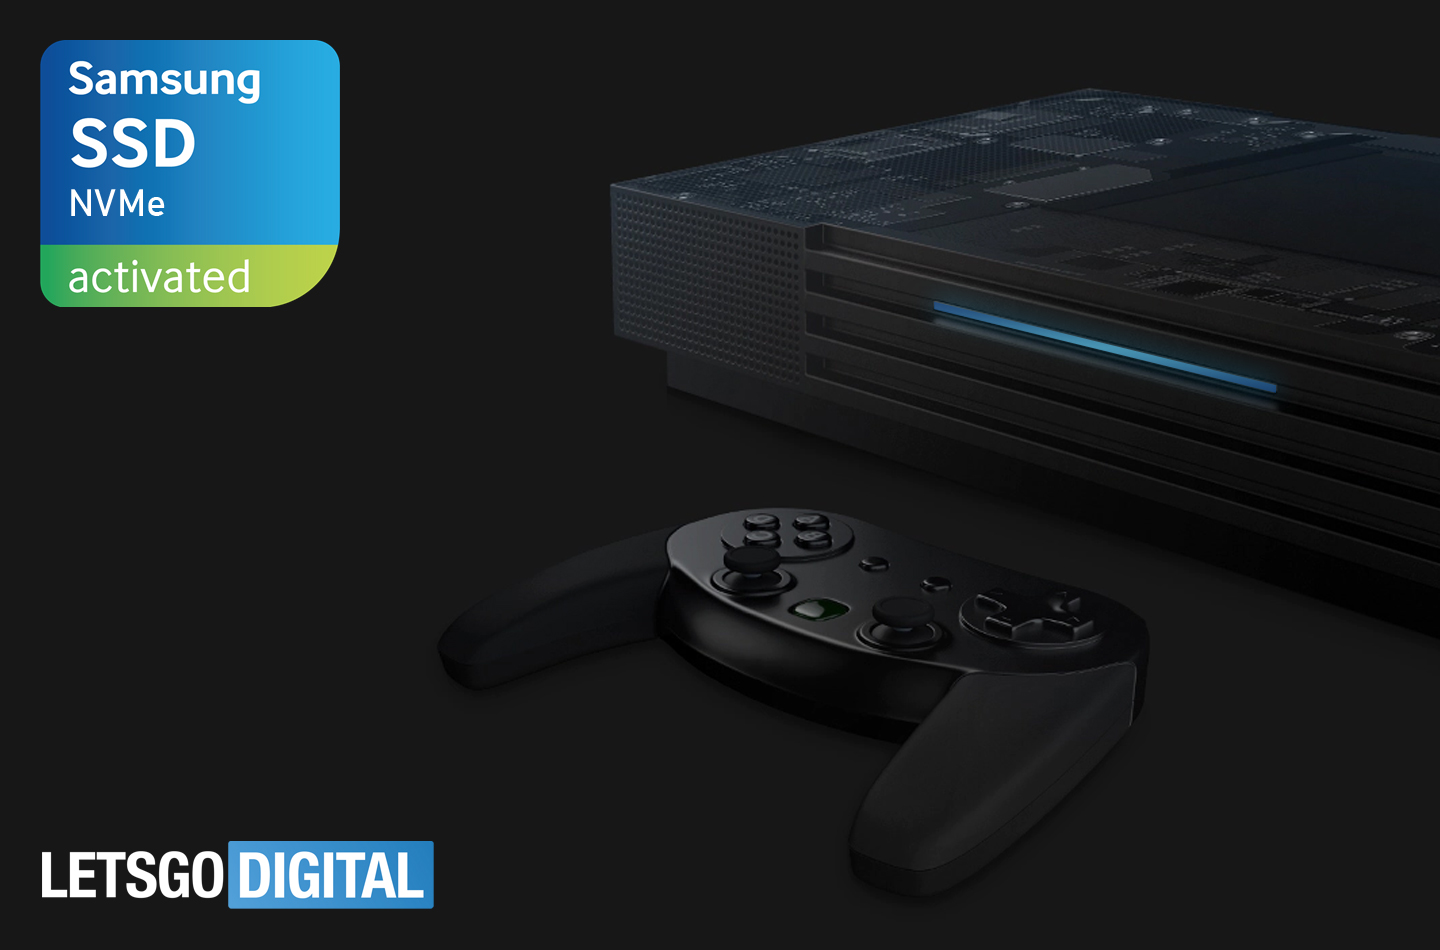 Samsung NVMe SSD game console